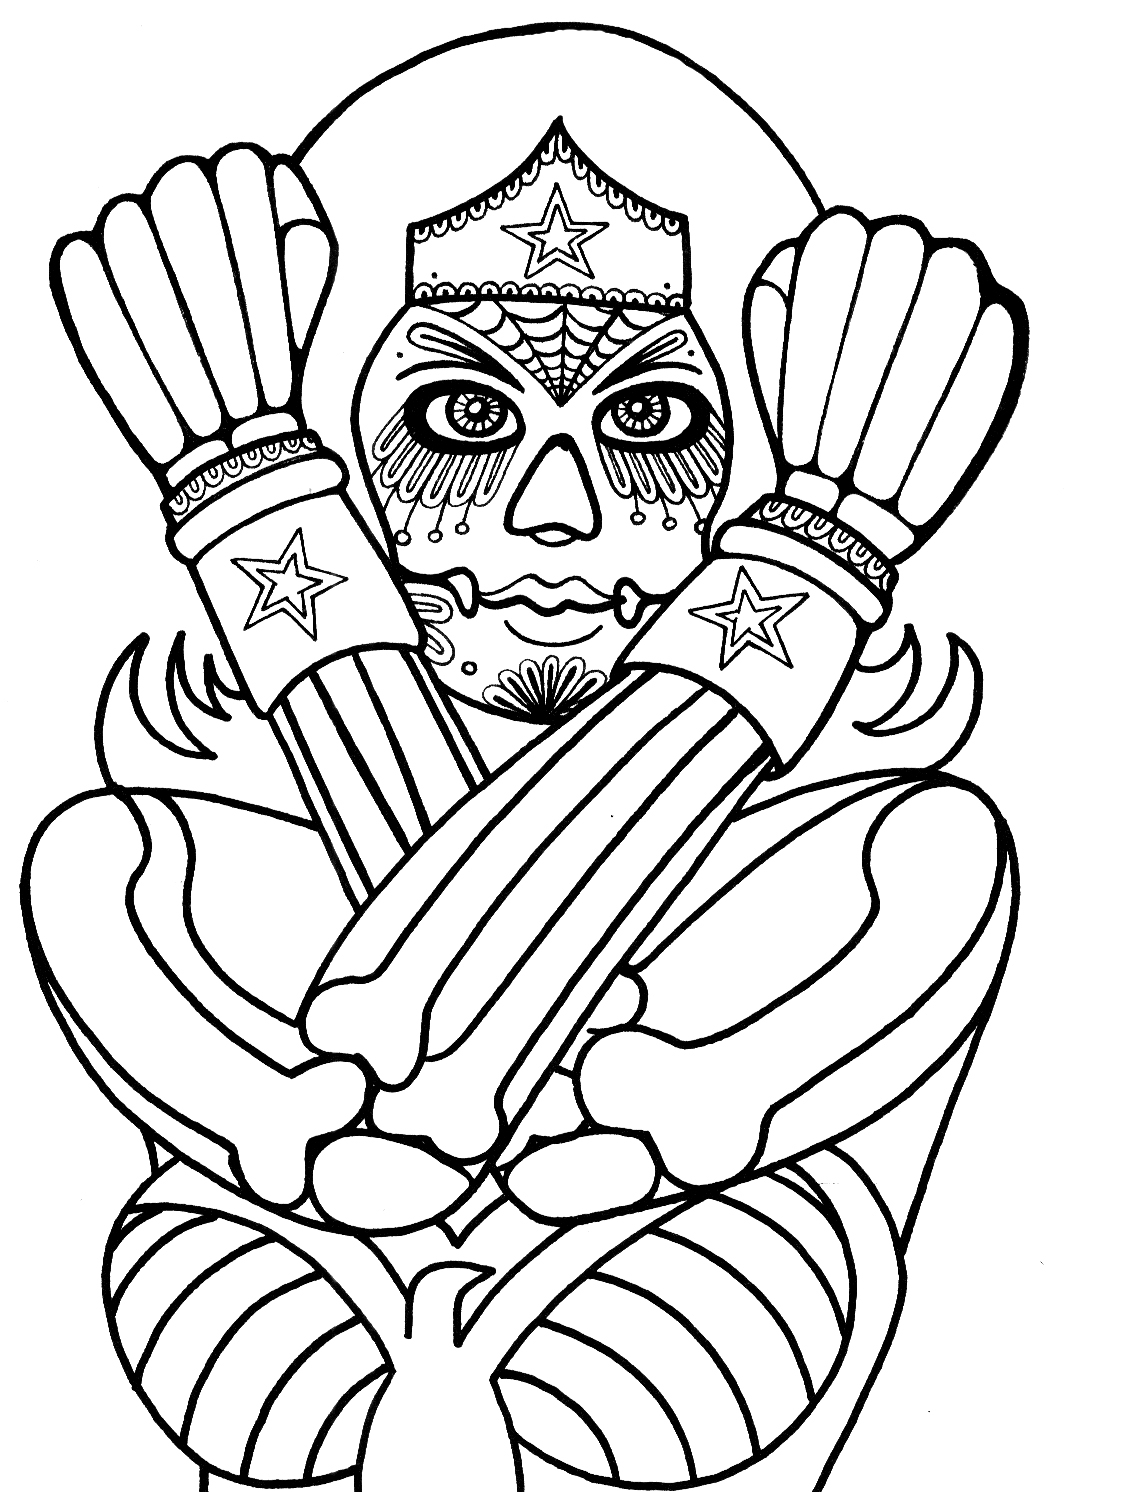 1127x1492 Yucca Flats, N M Wenchkin's Coloring Pages